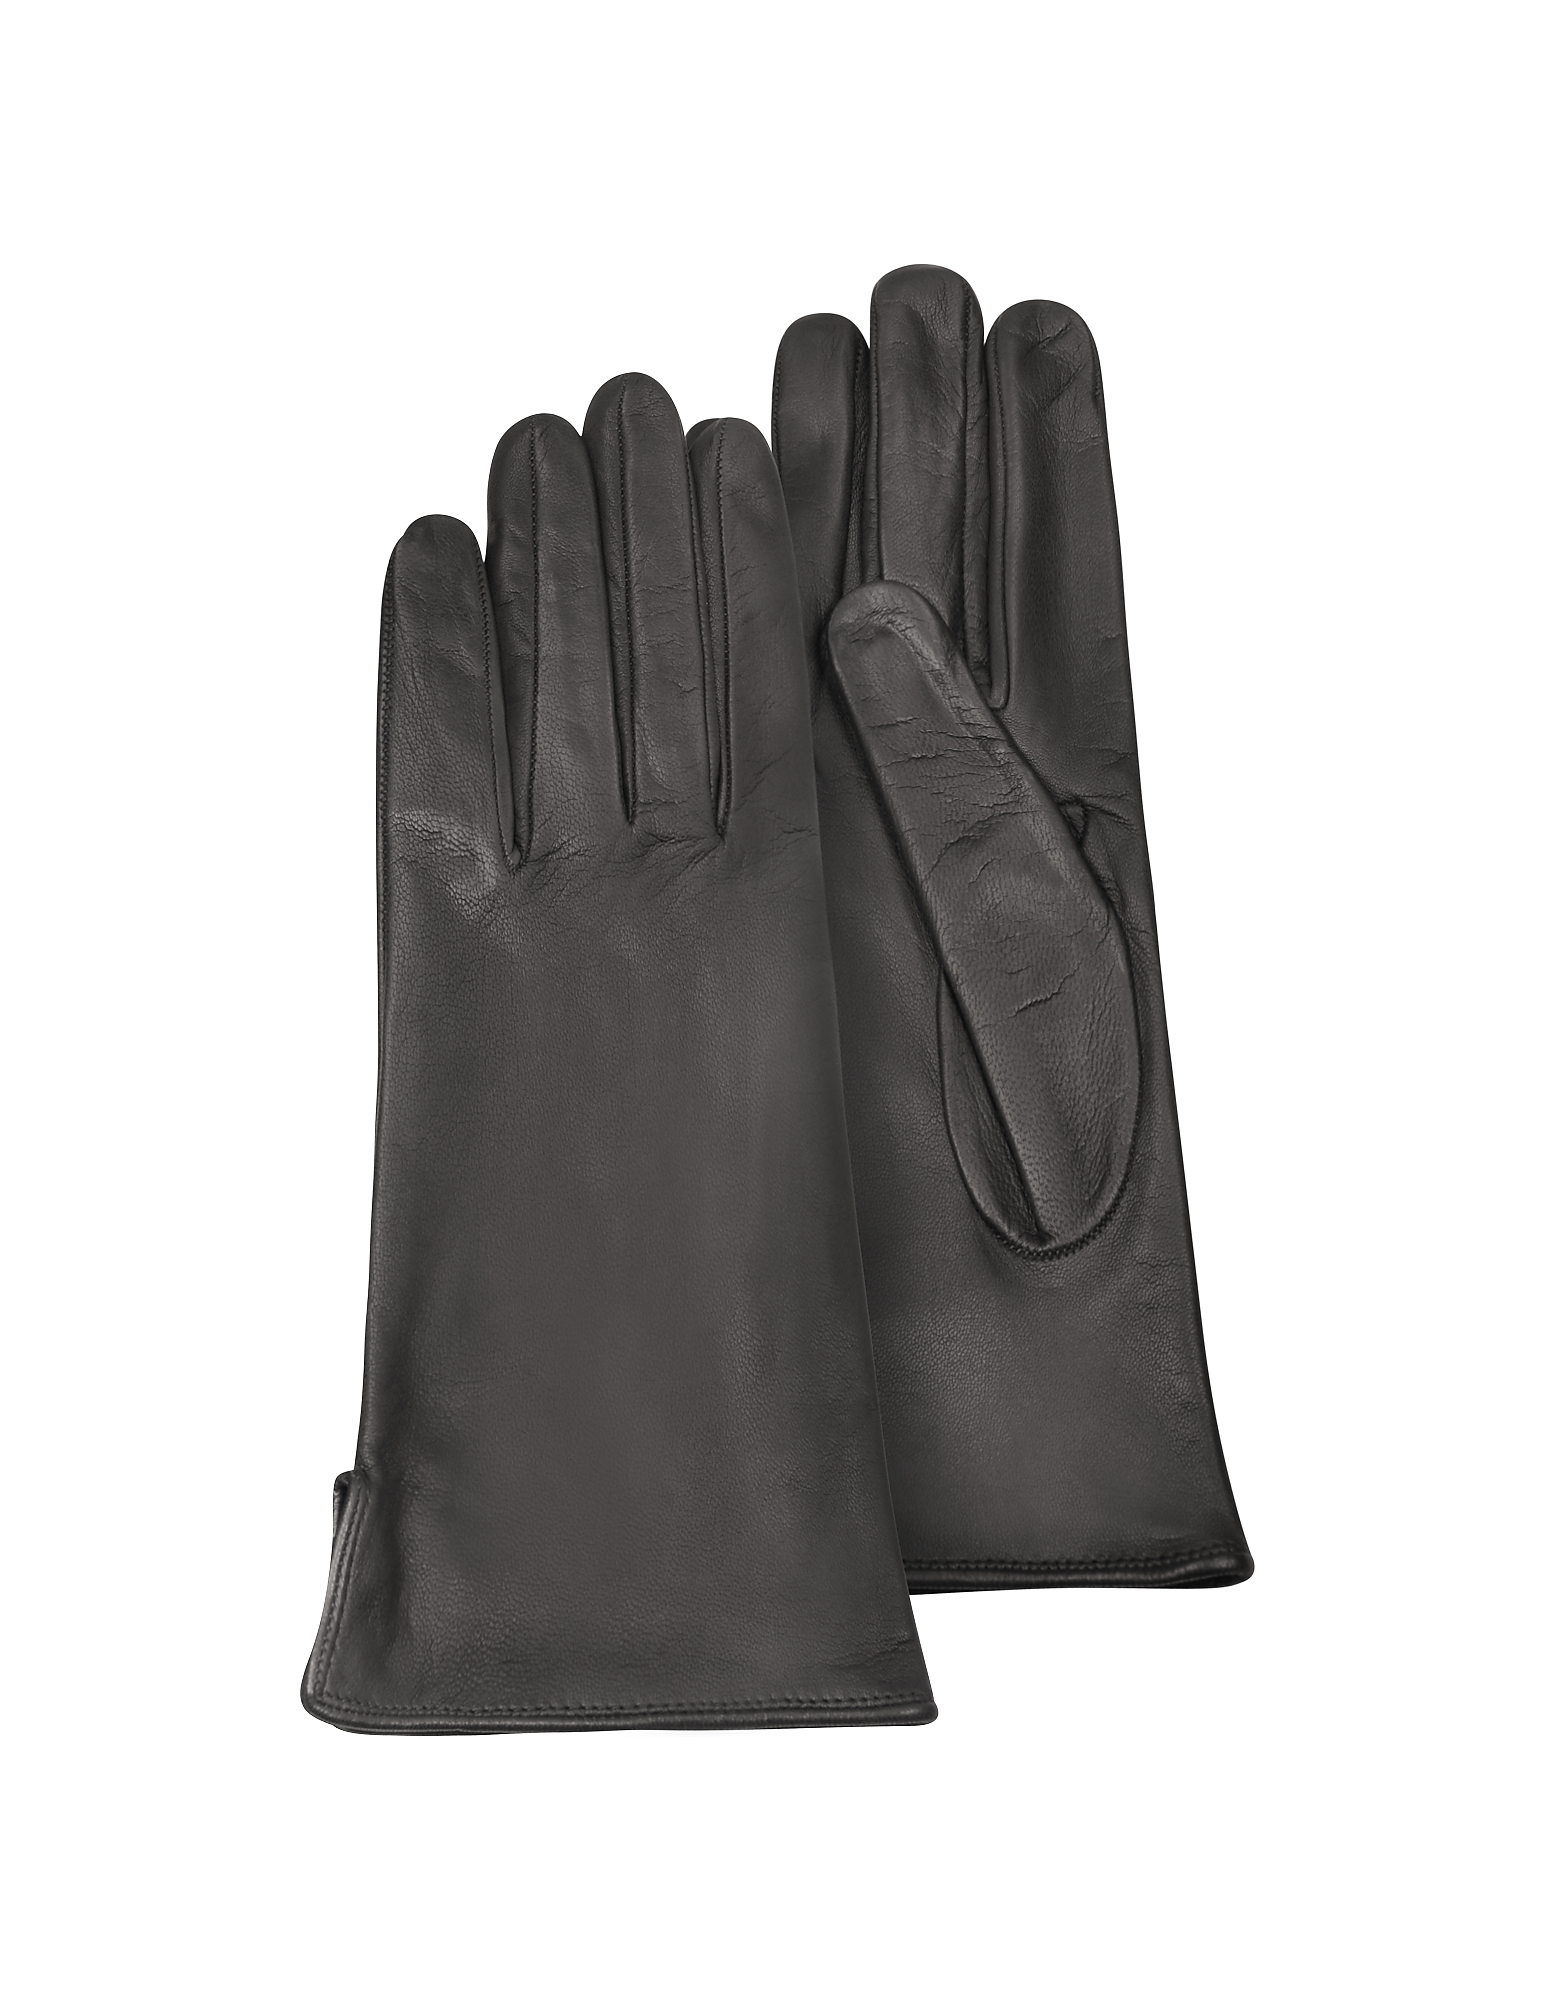 Forzieri Women's Gloves, Women's Black Calf Leather Gloves w/ Silk Lining